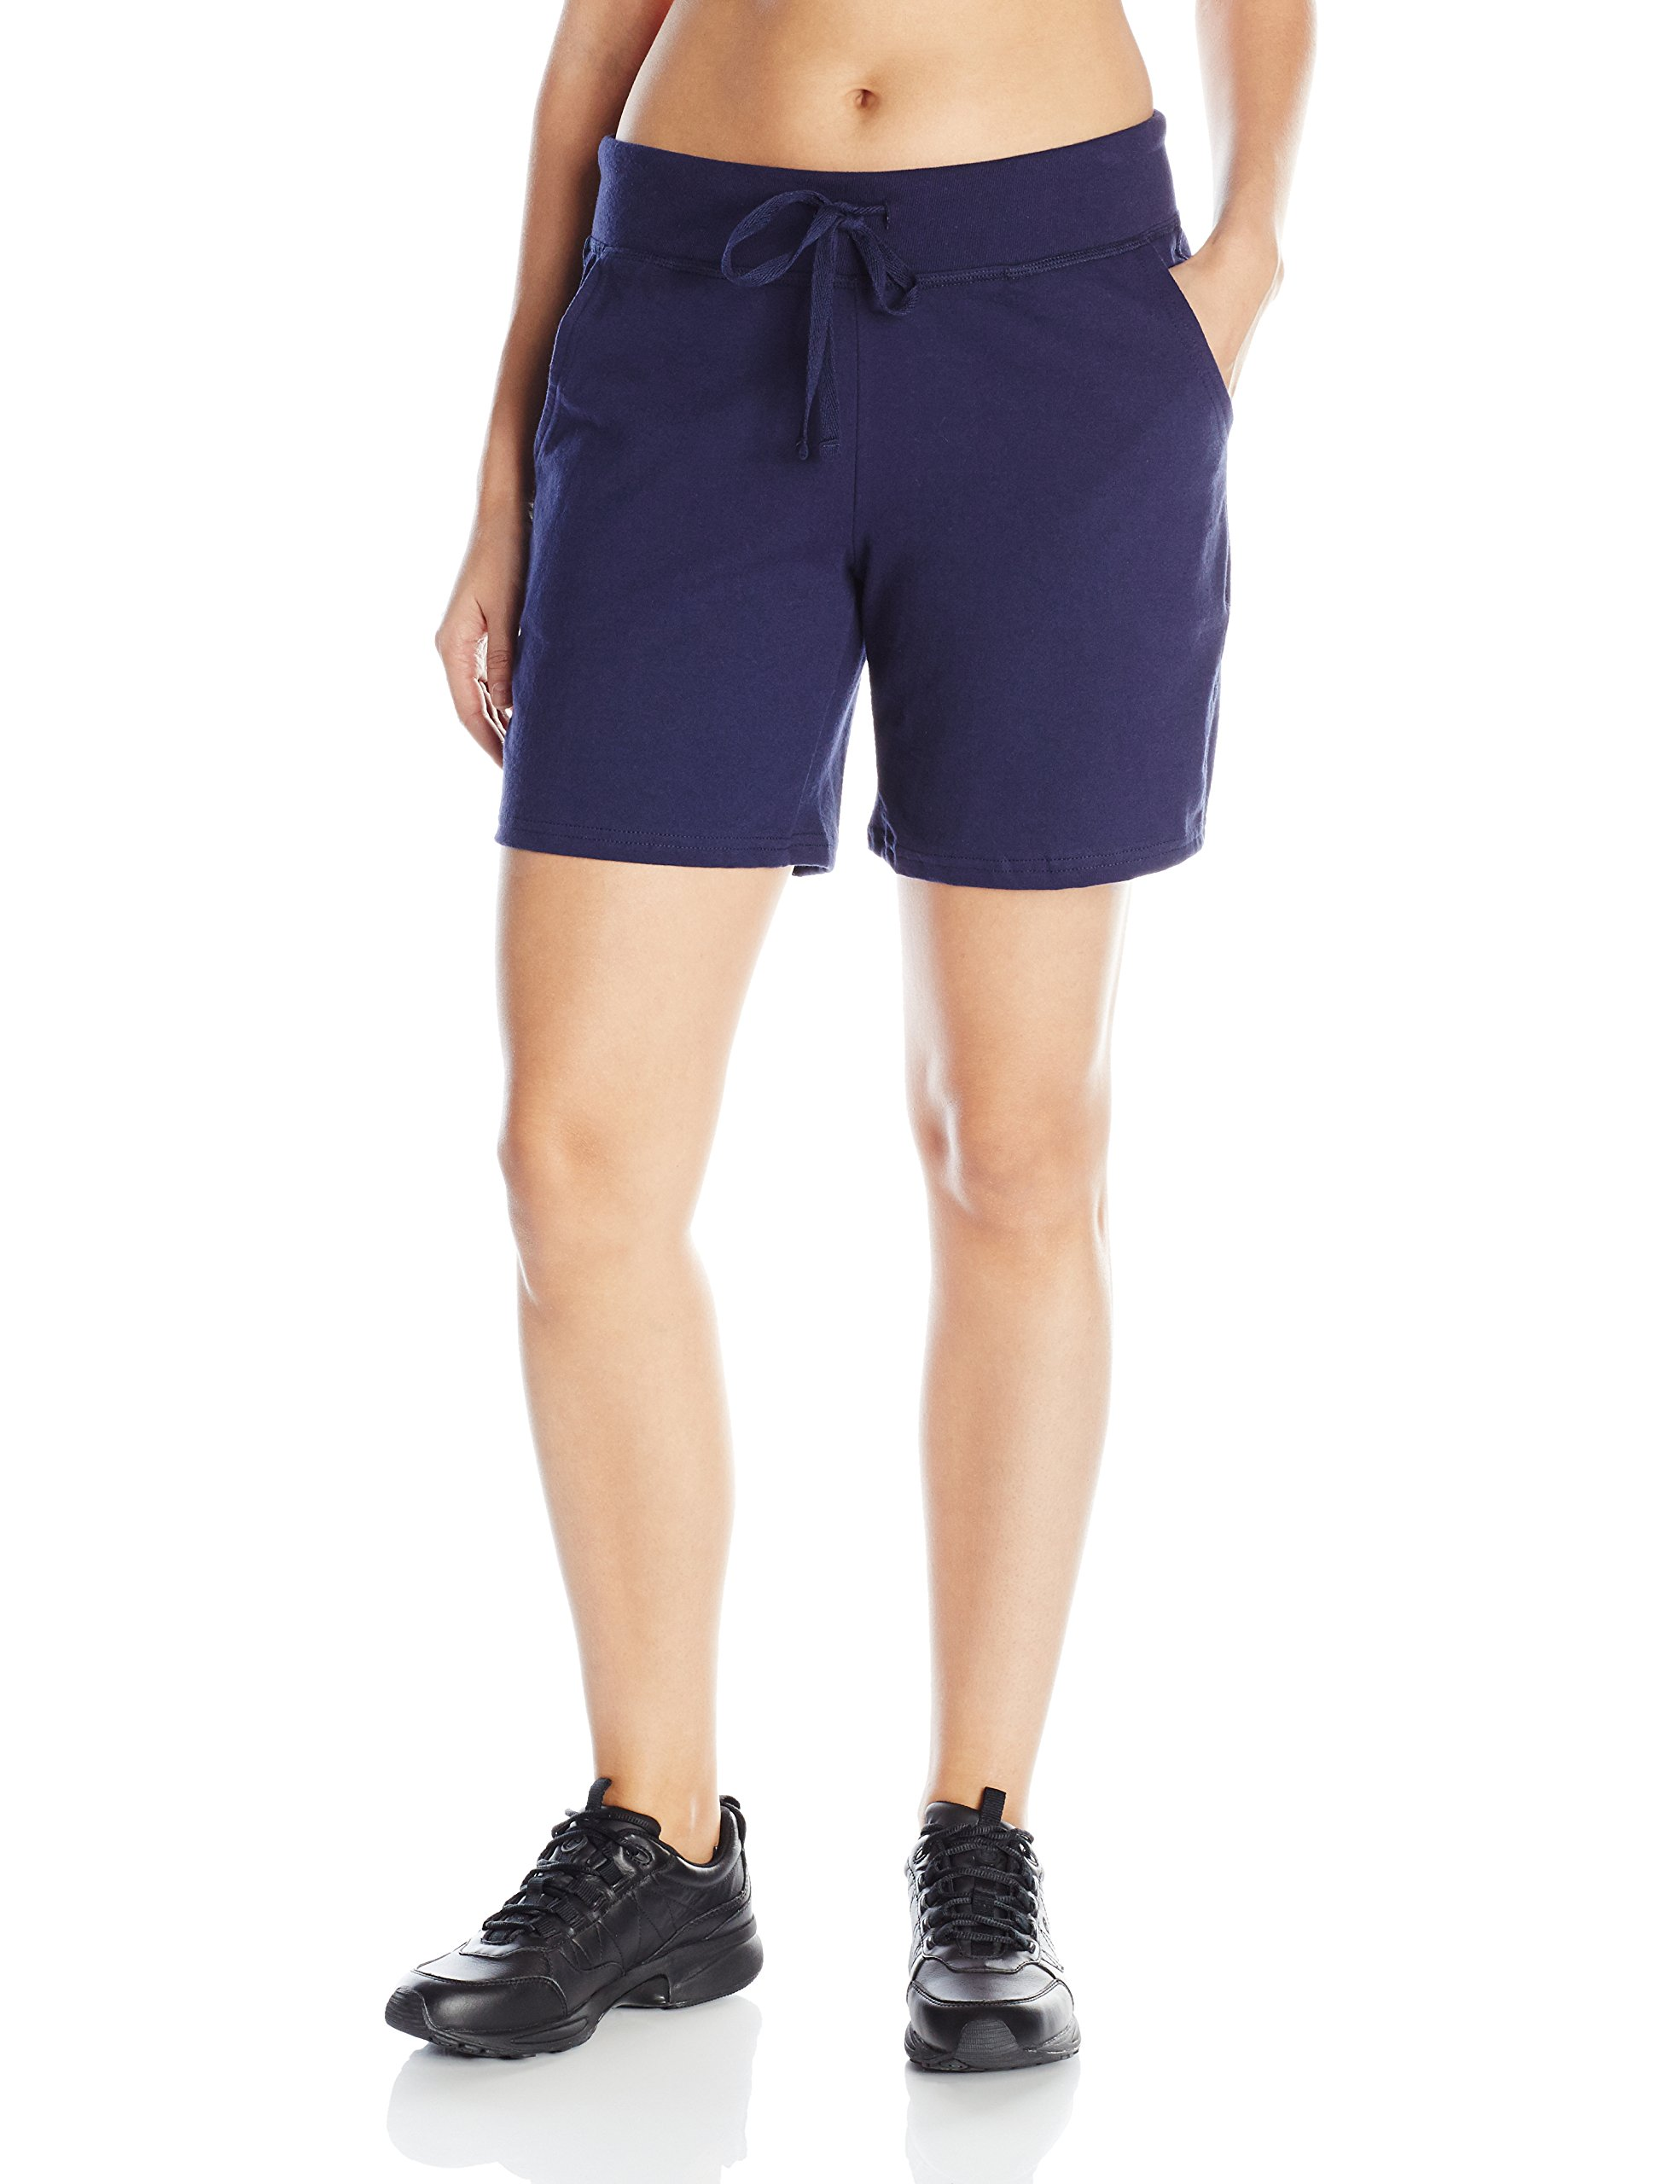 Hanes Women's Jersey Short, Navy, Large